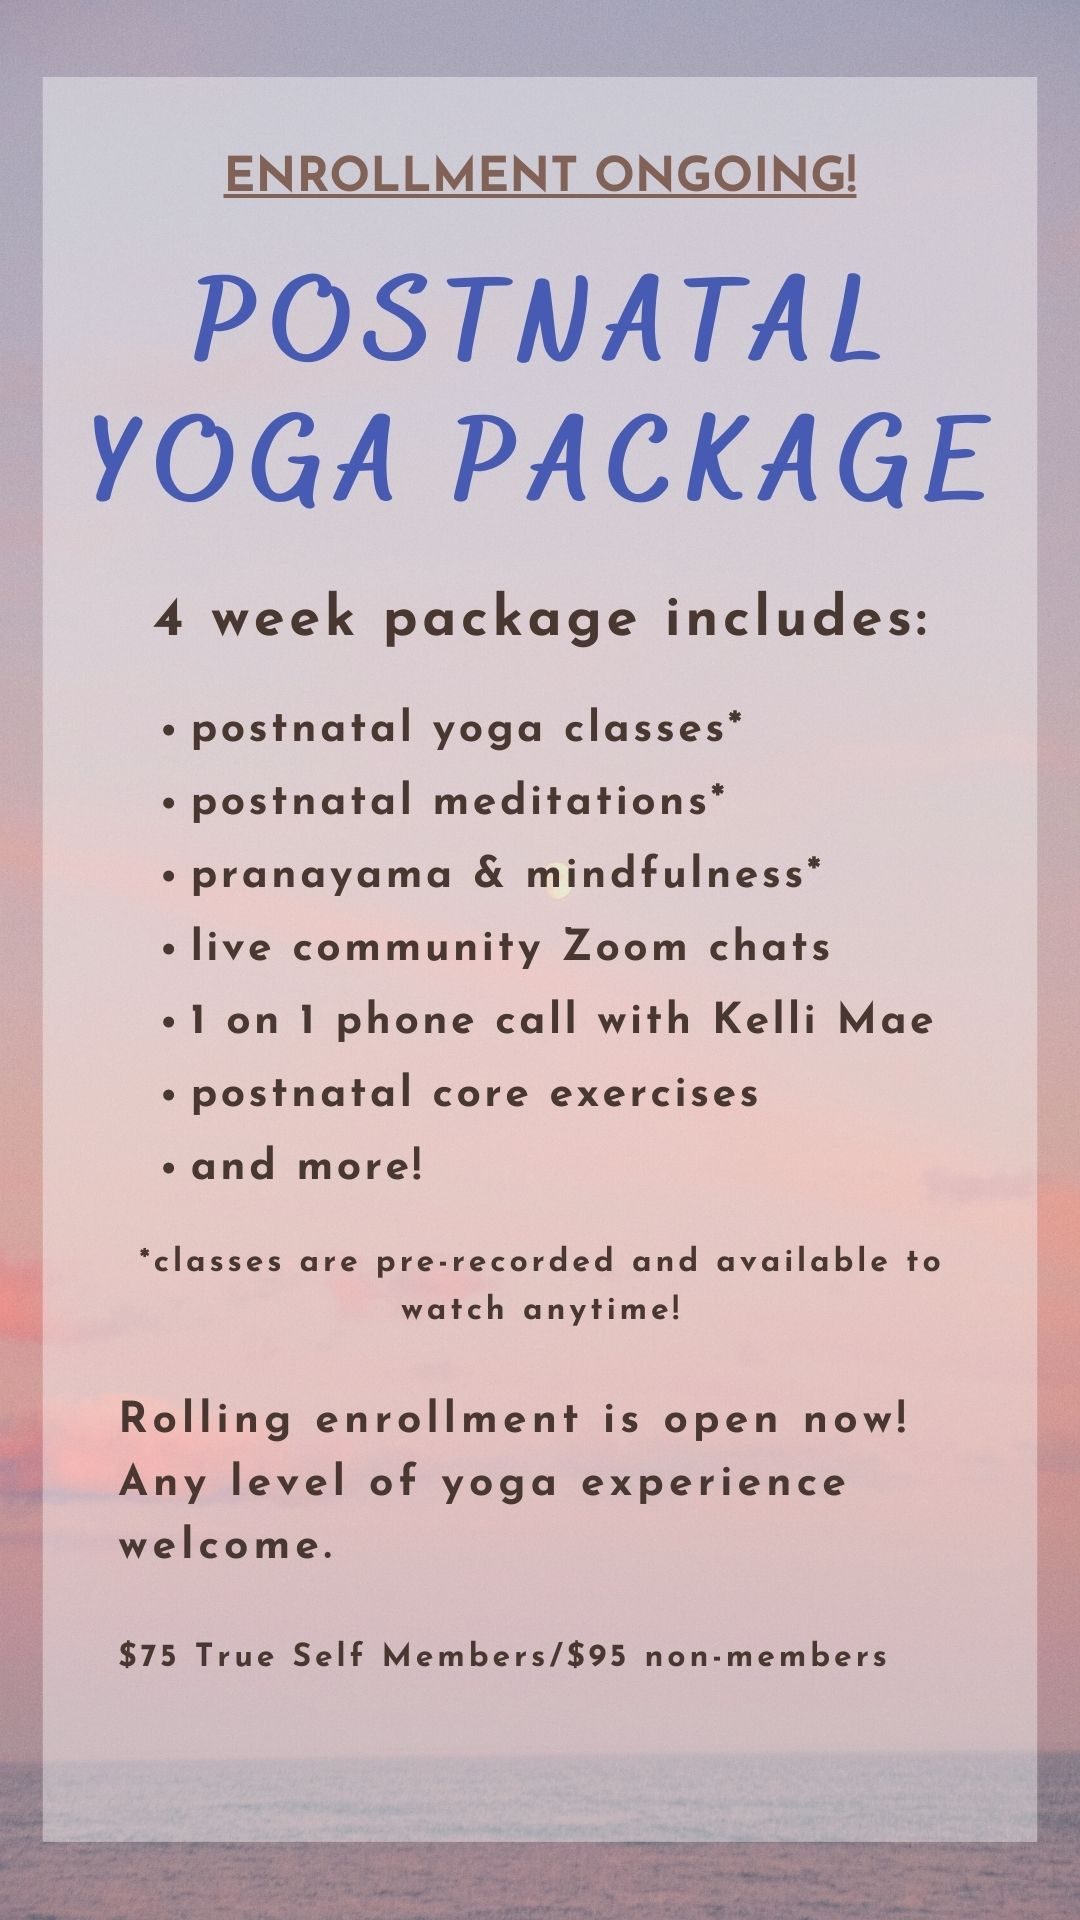 Postnatal Yoga Package